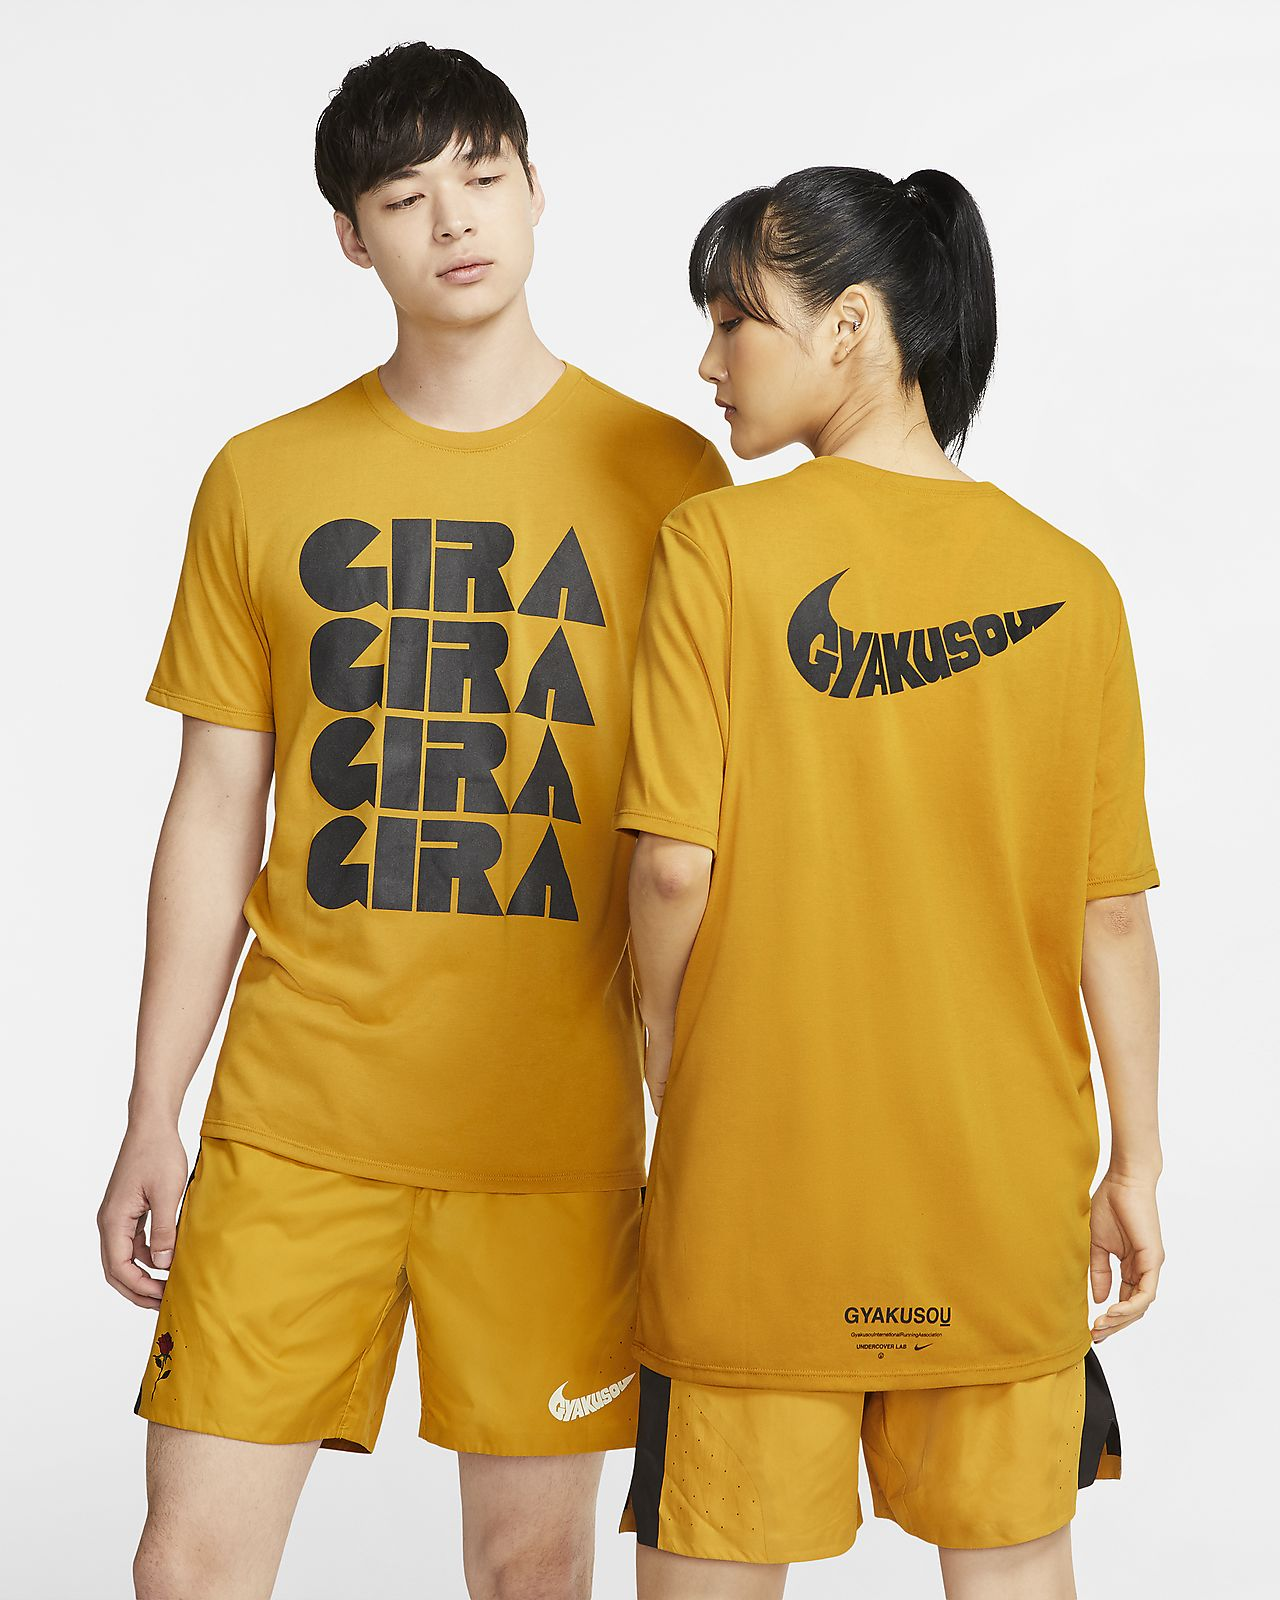 Nike x Gyakusou Men's T-Shirt